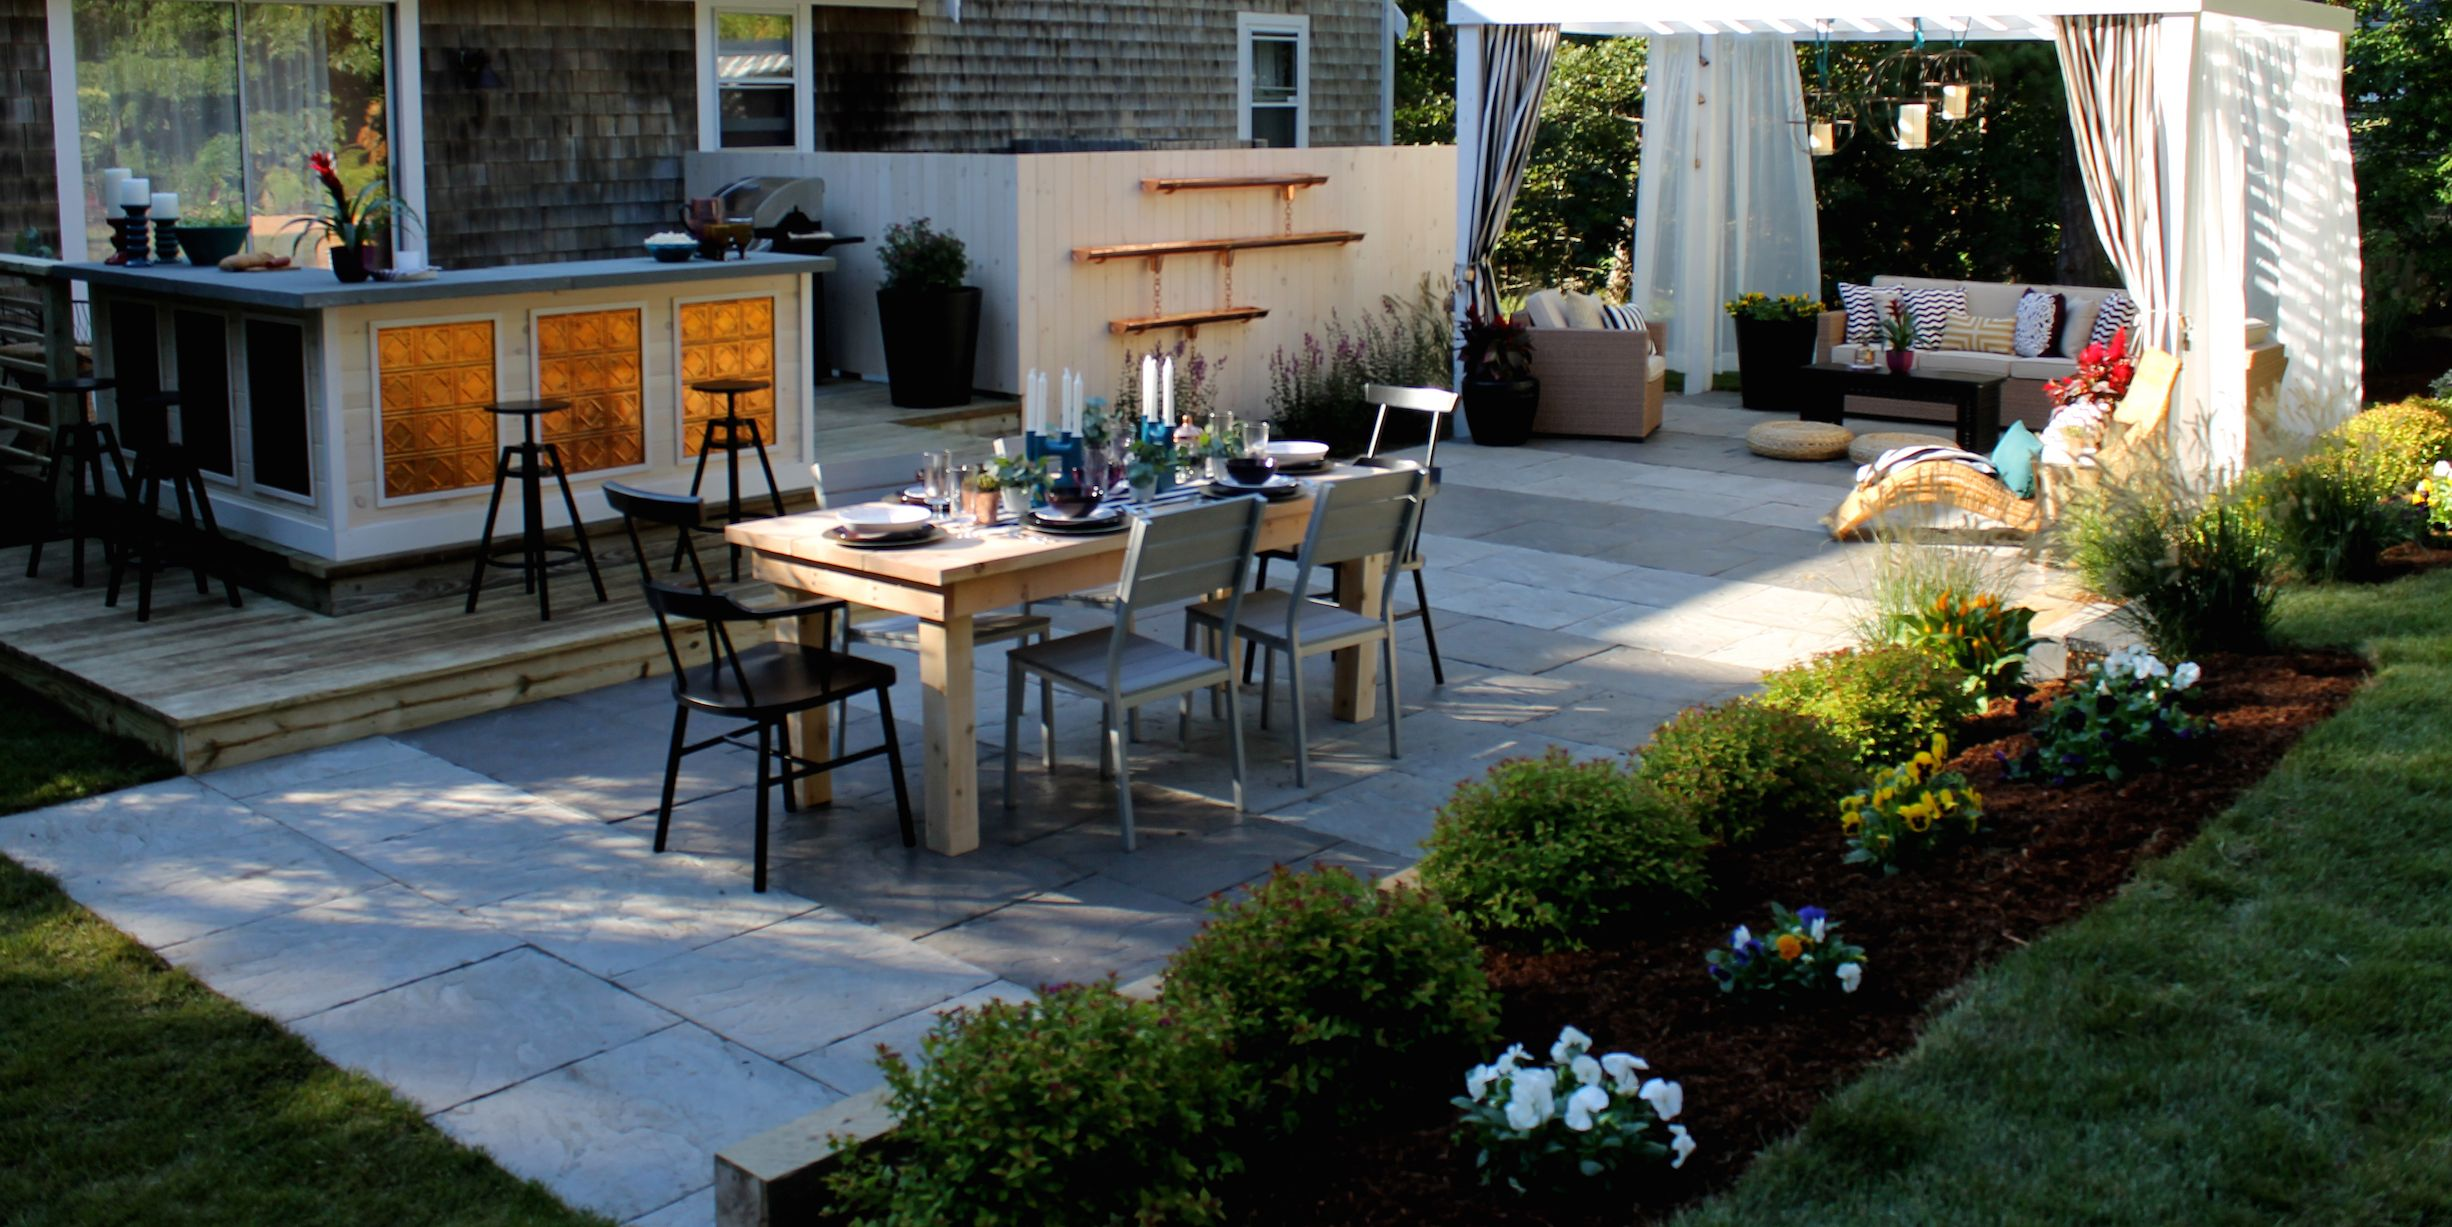 Landscaping ideas for a low maintenance yard